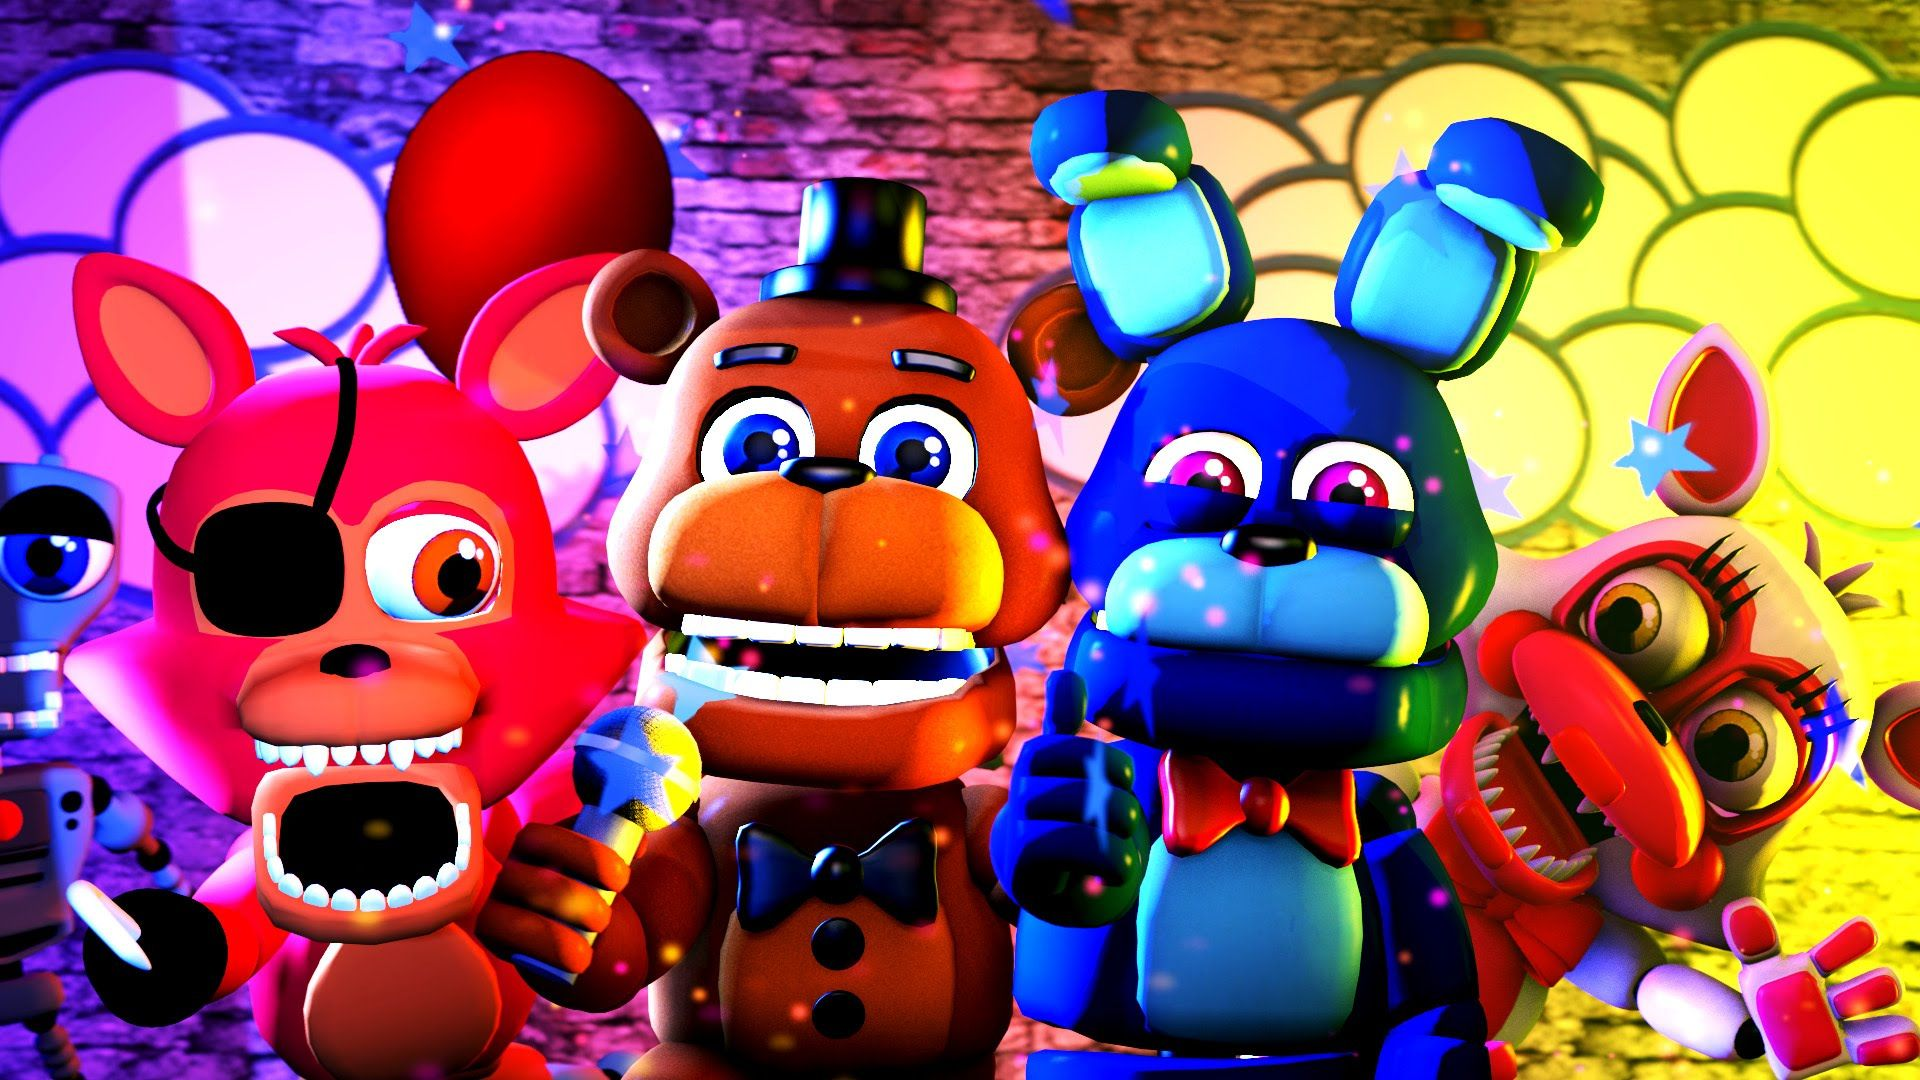 Why Cute FNAF Wallpaper Good background For You!